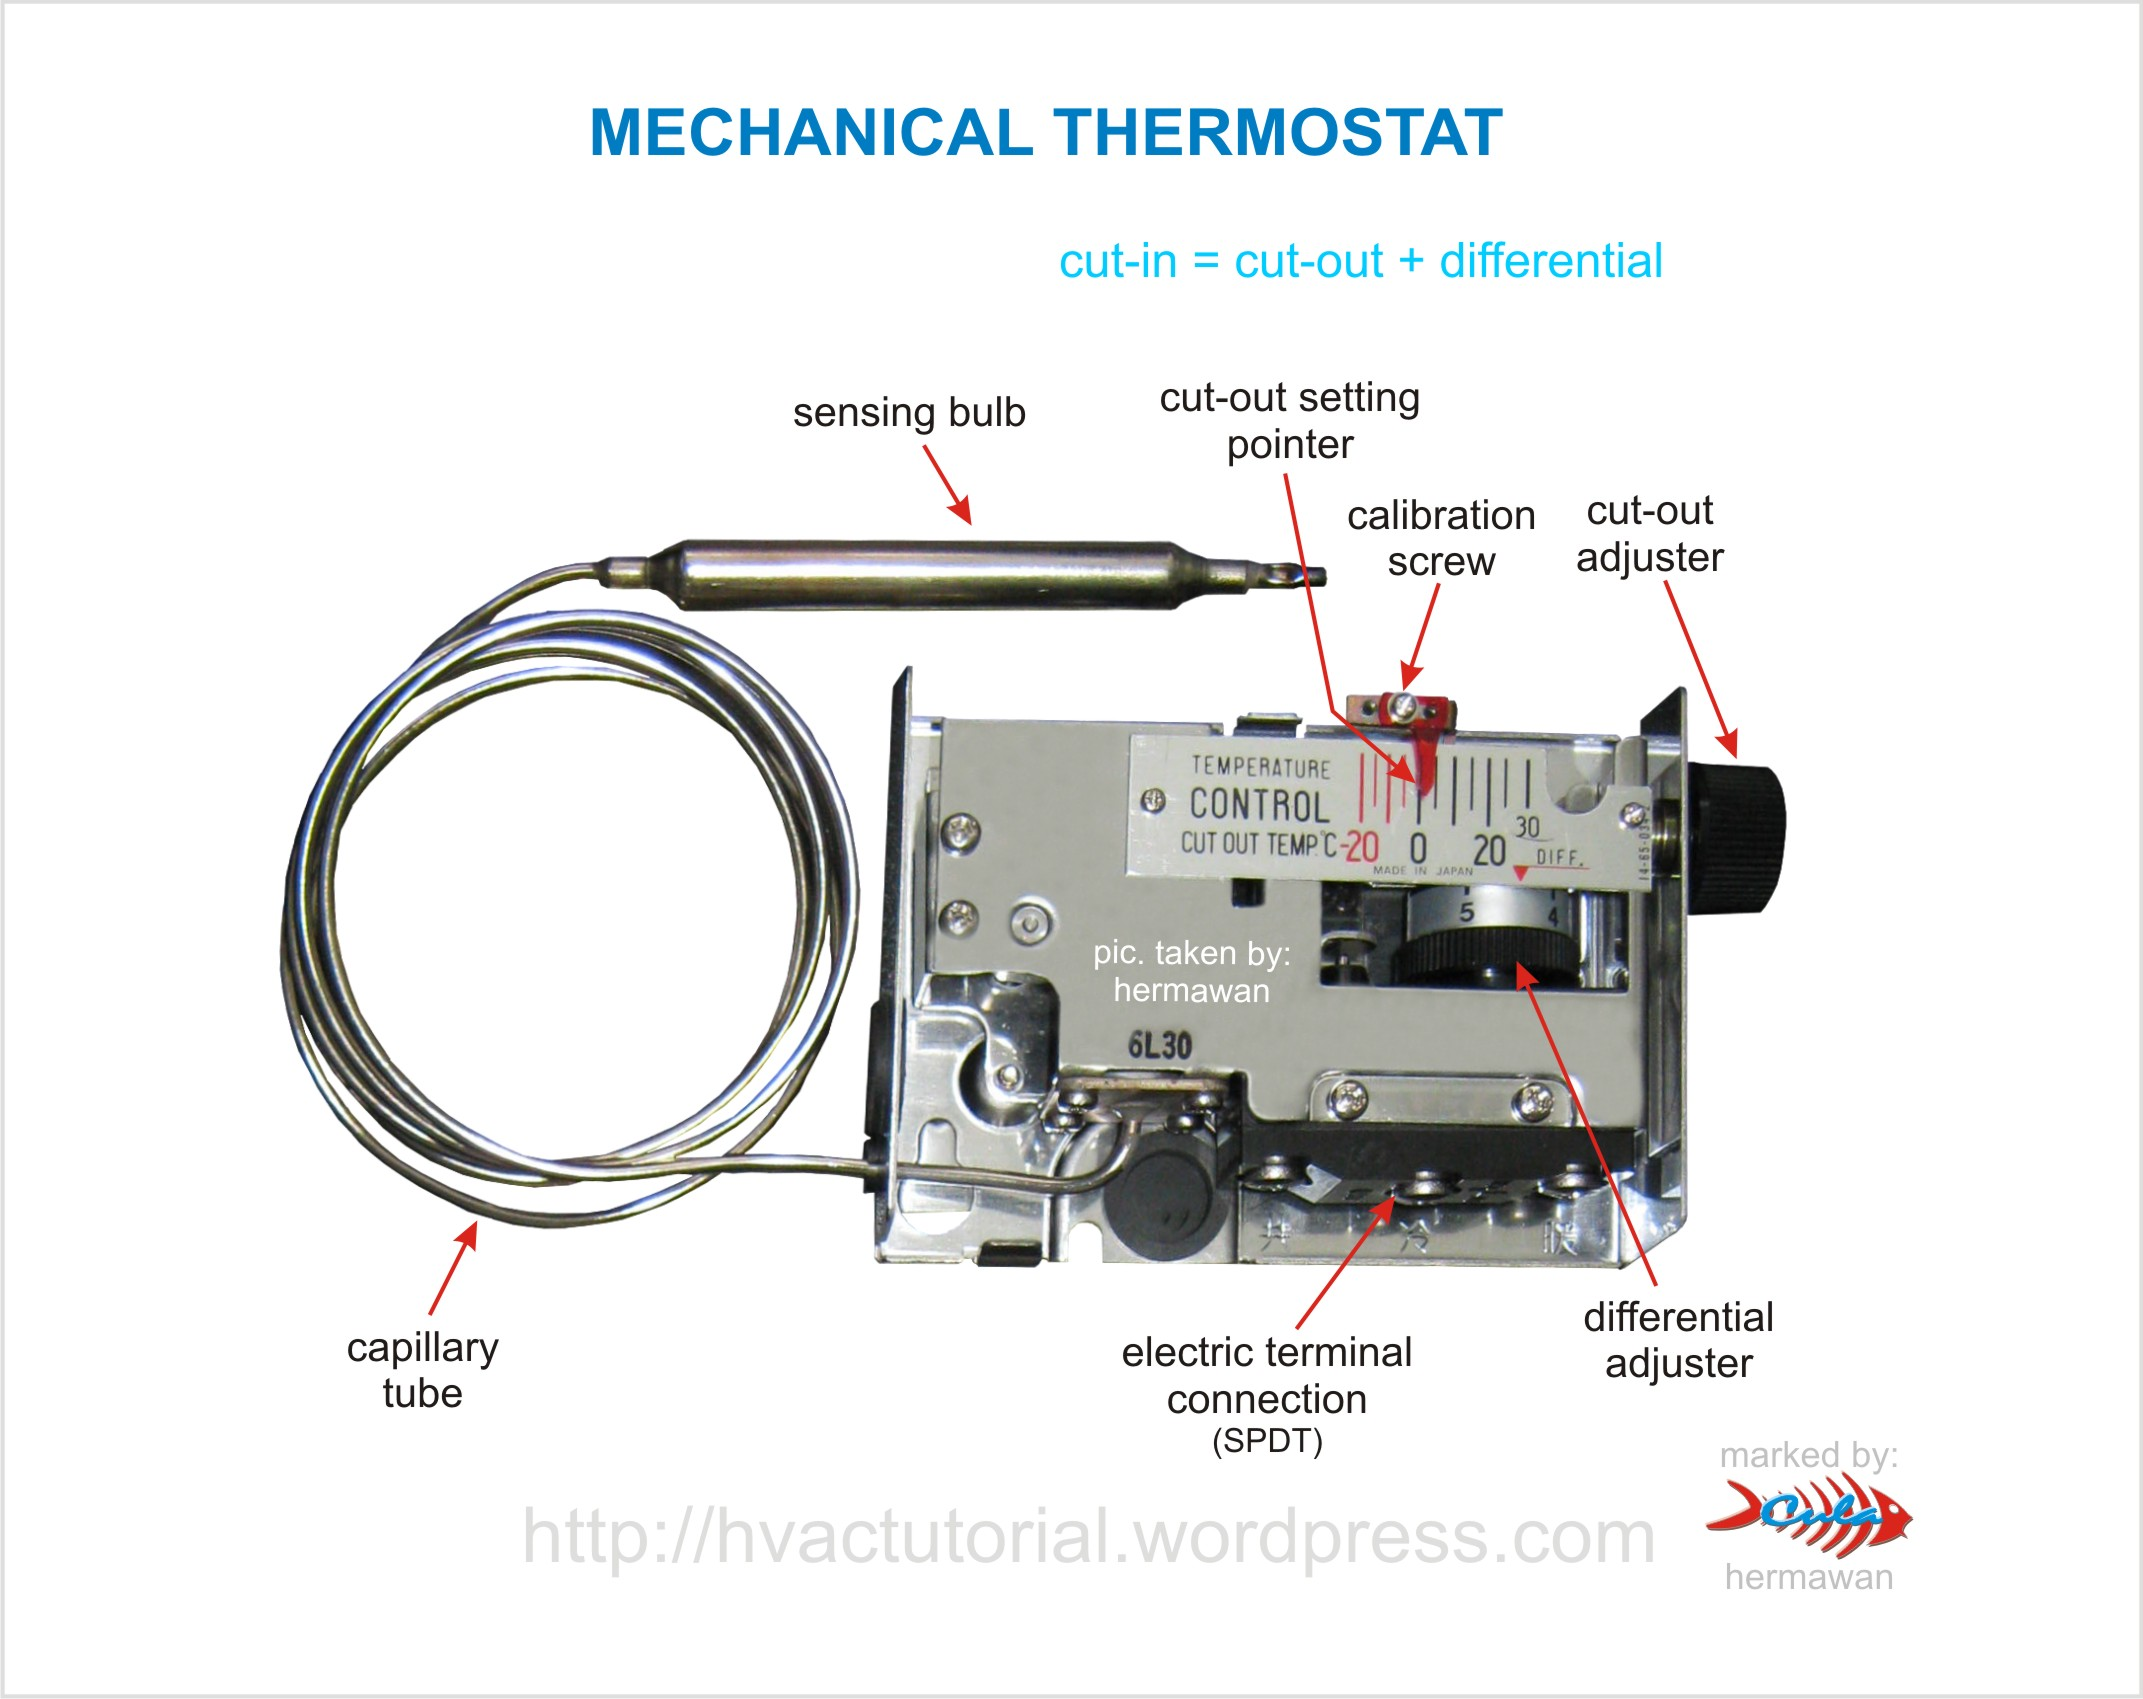 Wiring diagram kompresor ac free download wiring diagram xwiaw ac ac pressor wiring diagram wellread me free download wiring diagram mechanical thermostat hermawans blog refrigeration and air of wiring diagram kompresor cheapraybanclubmaster Gallery